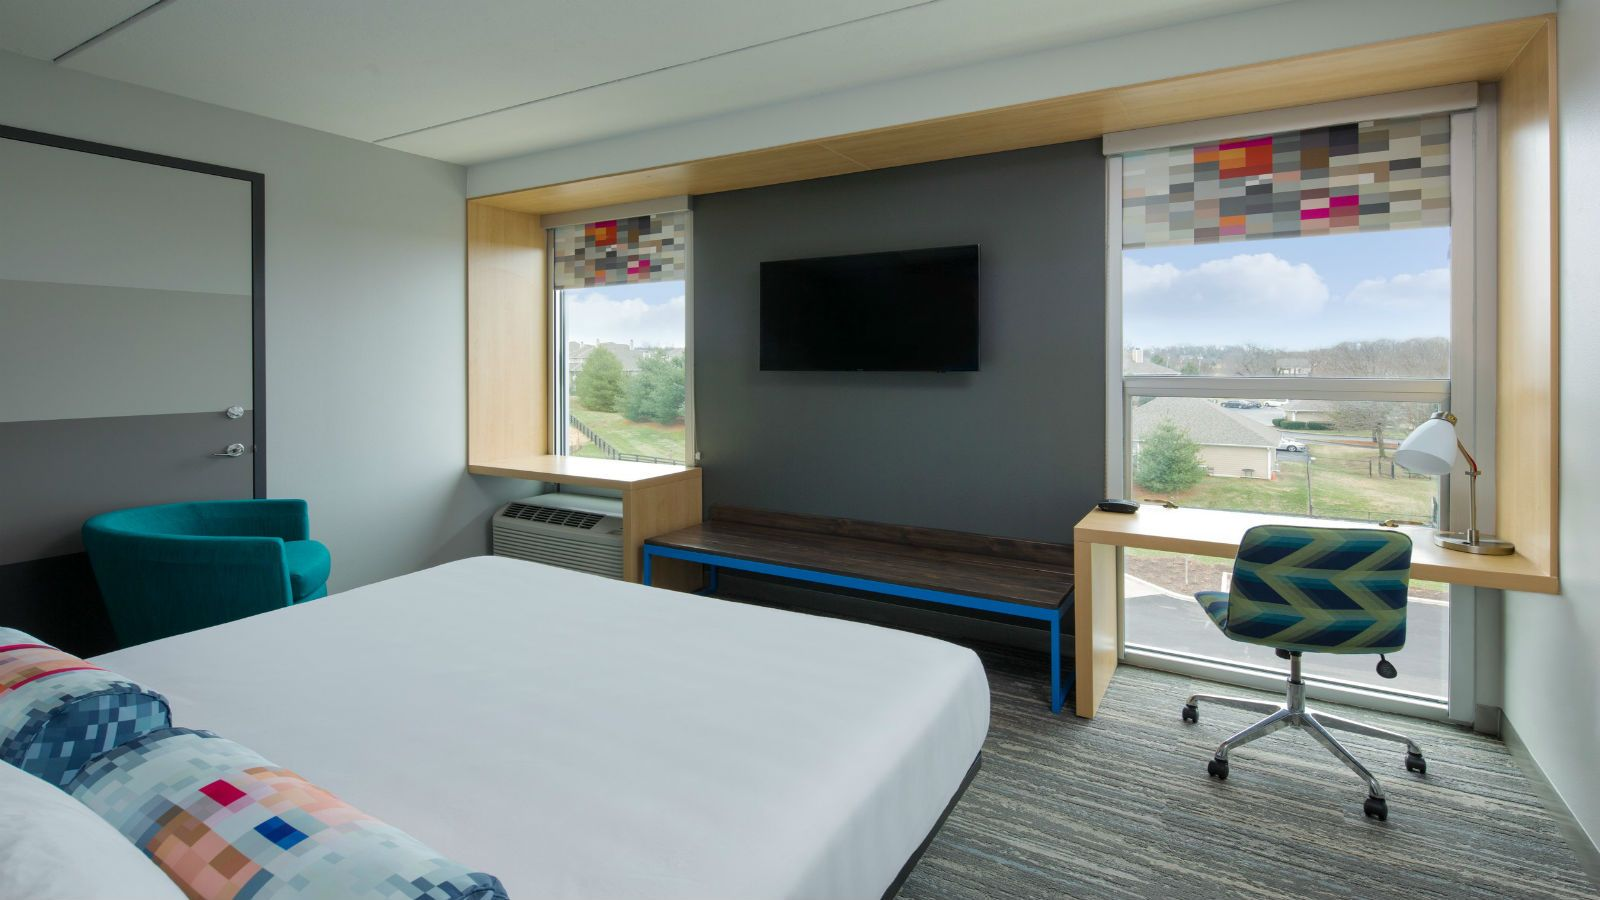 Louisville Accommodations - Aloft King Room